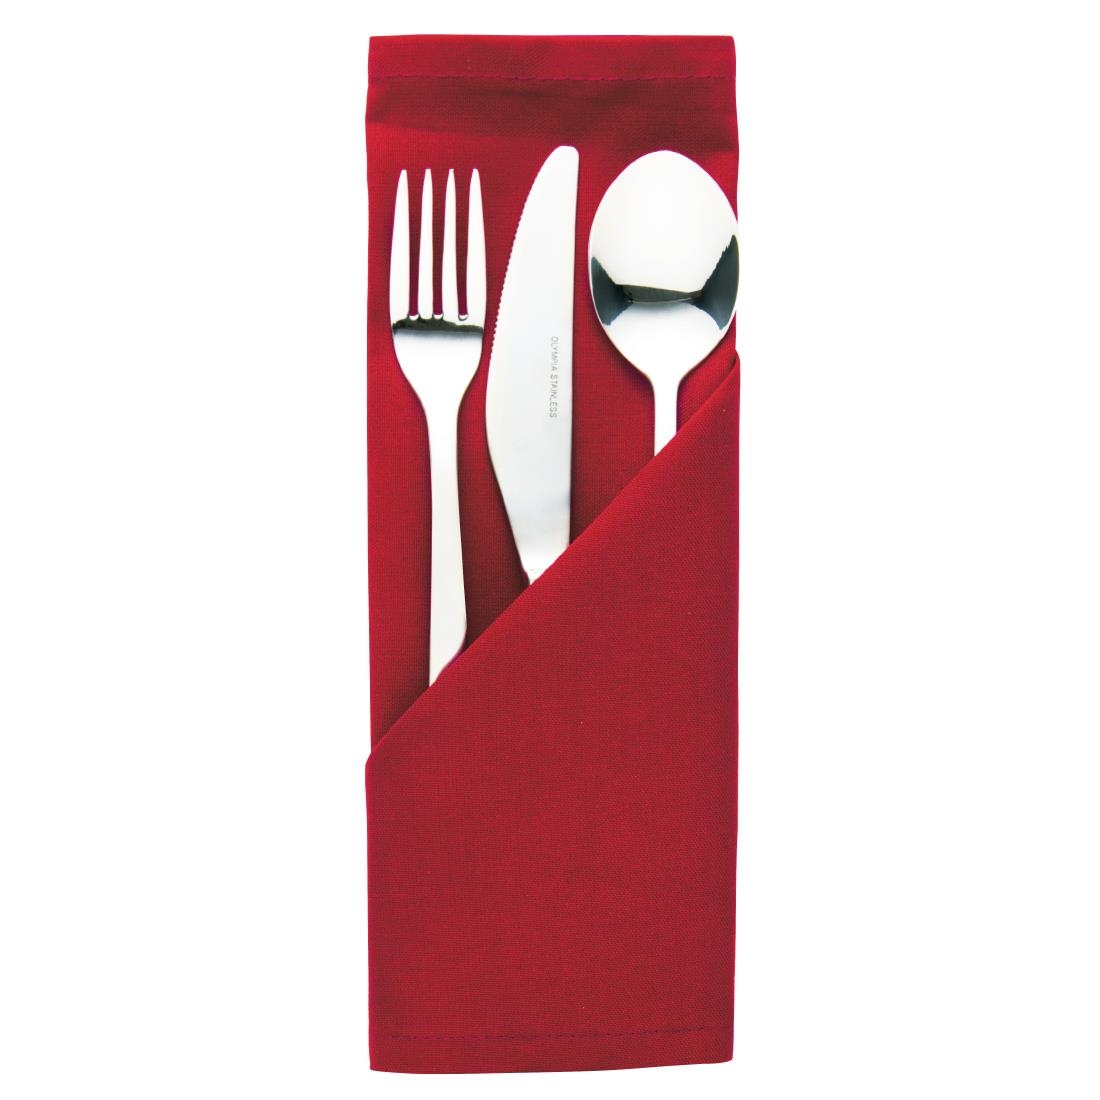 Image of Occasions Polyester Napkins Burgundy (Pack of 10) Pack of 10